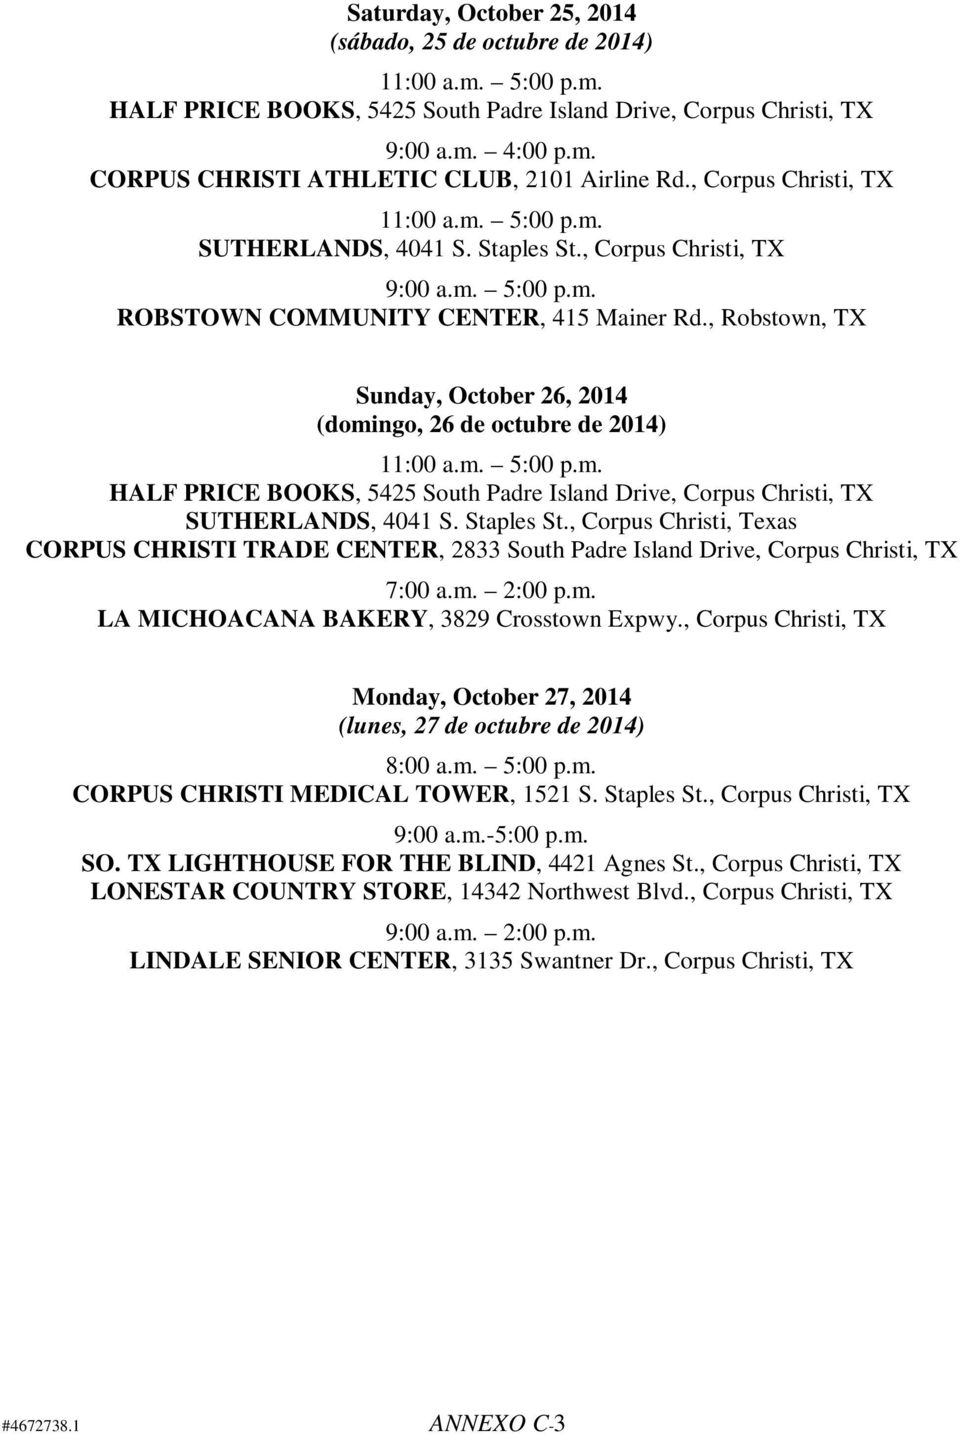 , Robstown, TX Sunday, October 26, 2014 (domingo, 26 de octubre de 2014) 11:00 a.m. 5:00 p.m. HALF PRICE BOOKS, 5425 South Padre Island Drive, Corpus Christi, TX SUTHERLANDS, 4041 S. Staples St.